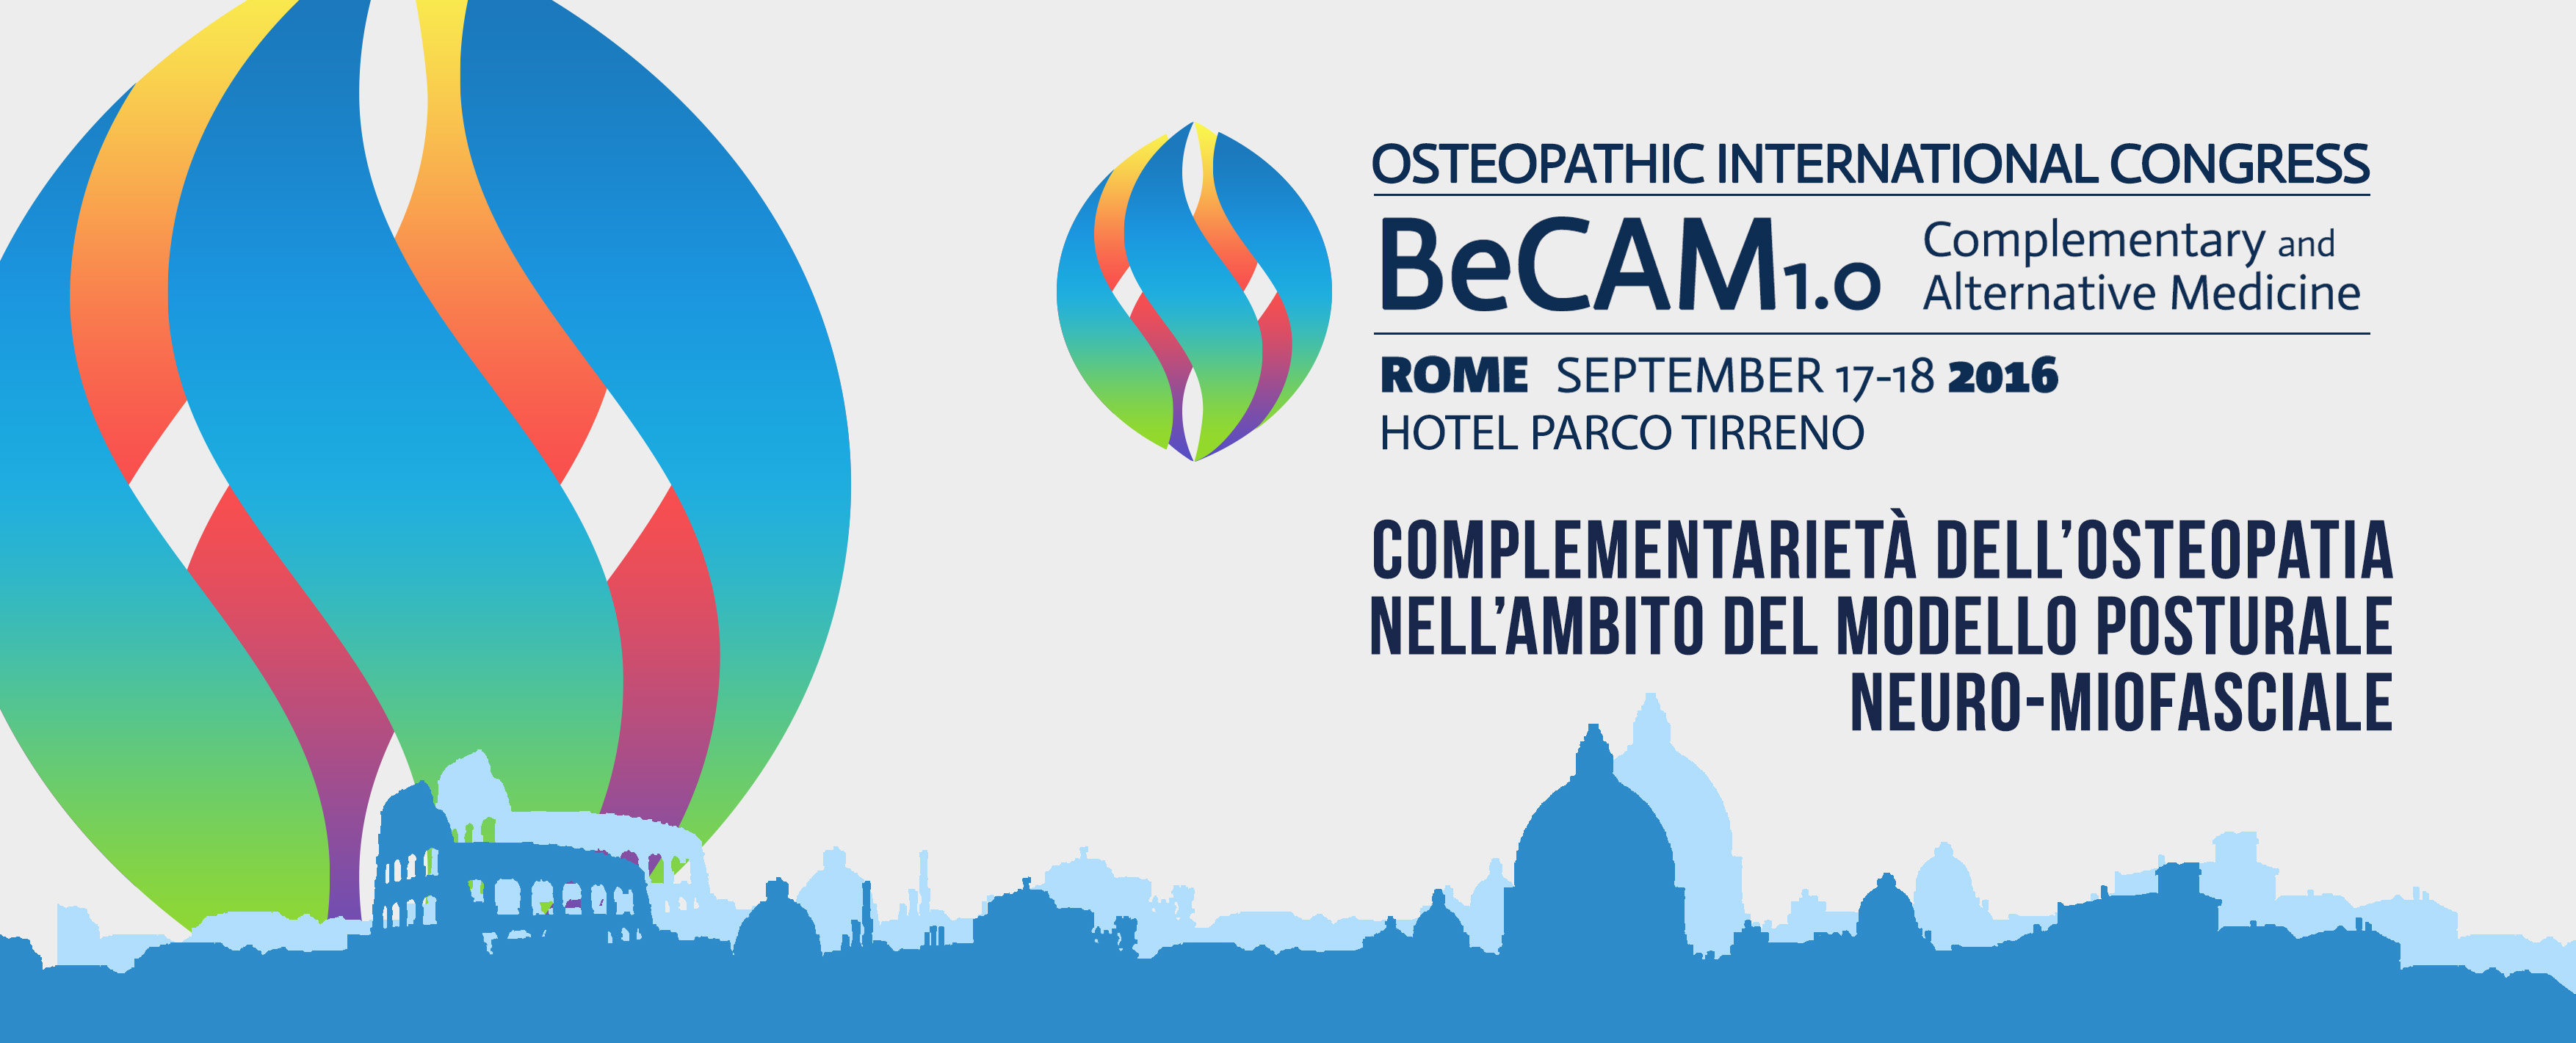 Osteopathy BE CAM 1.0""